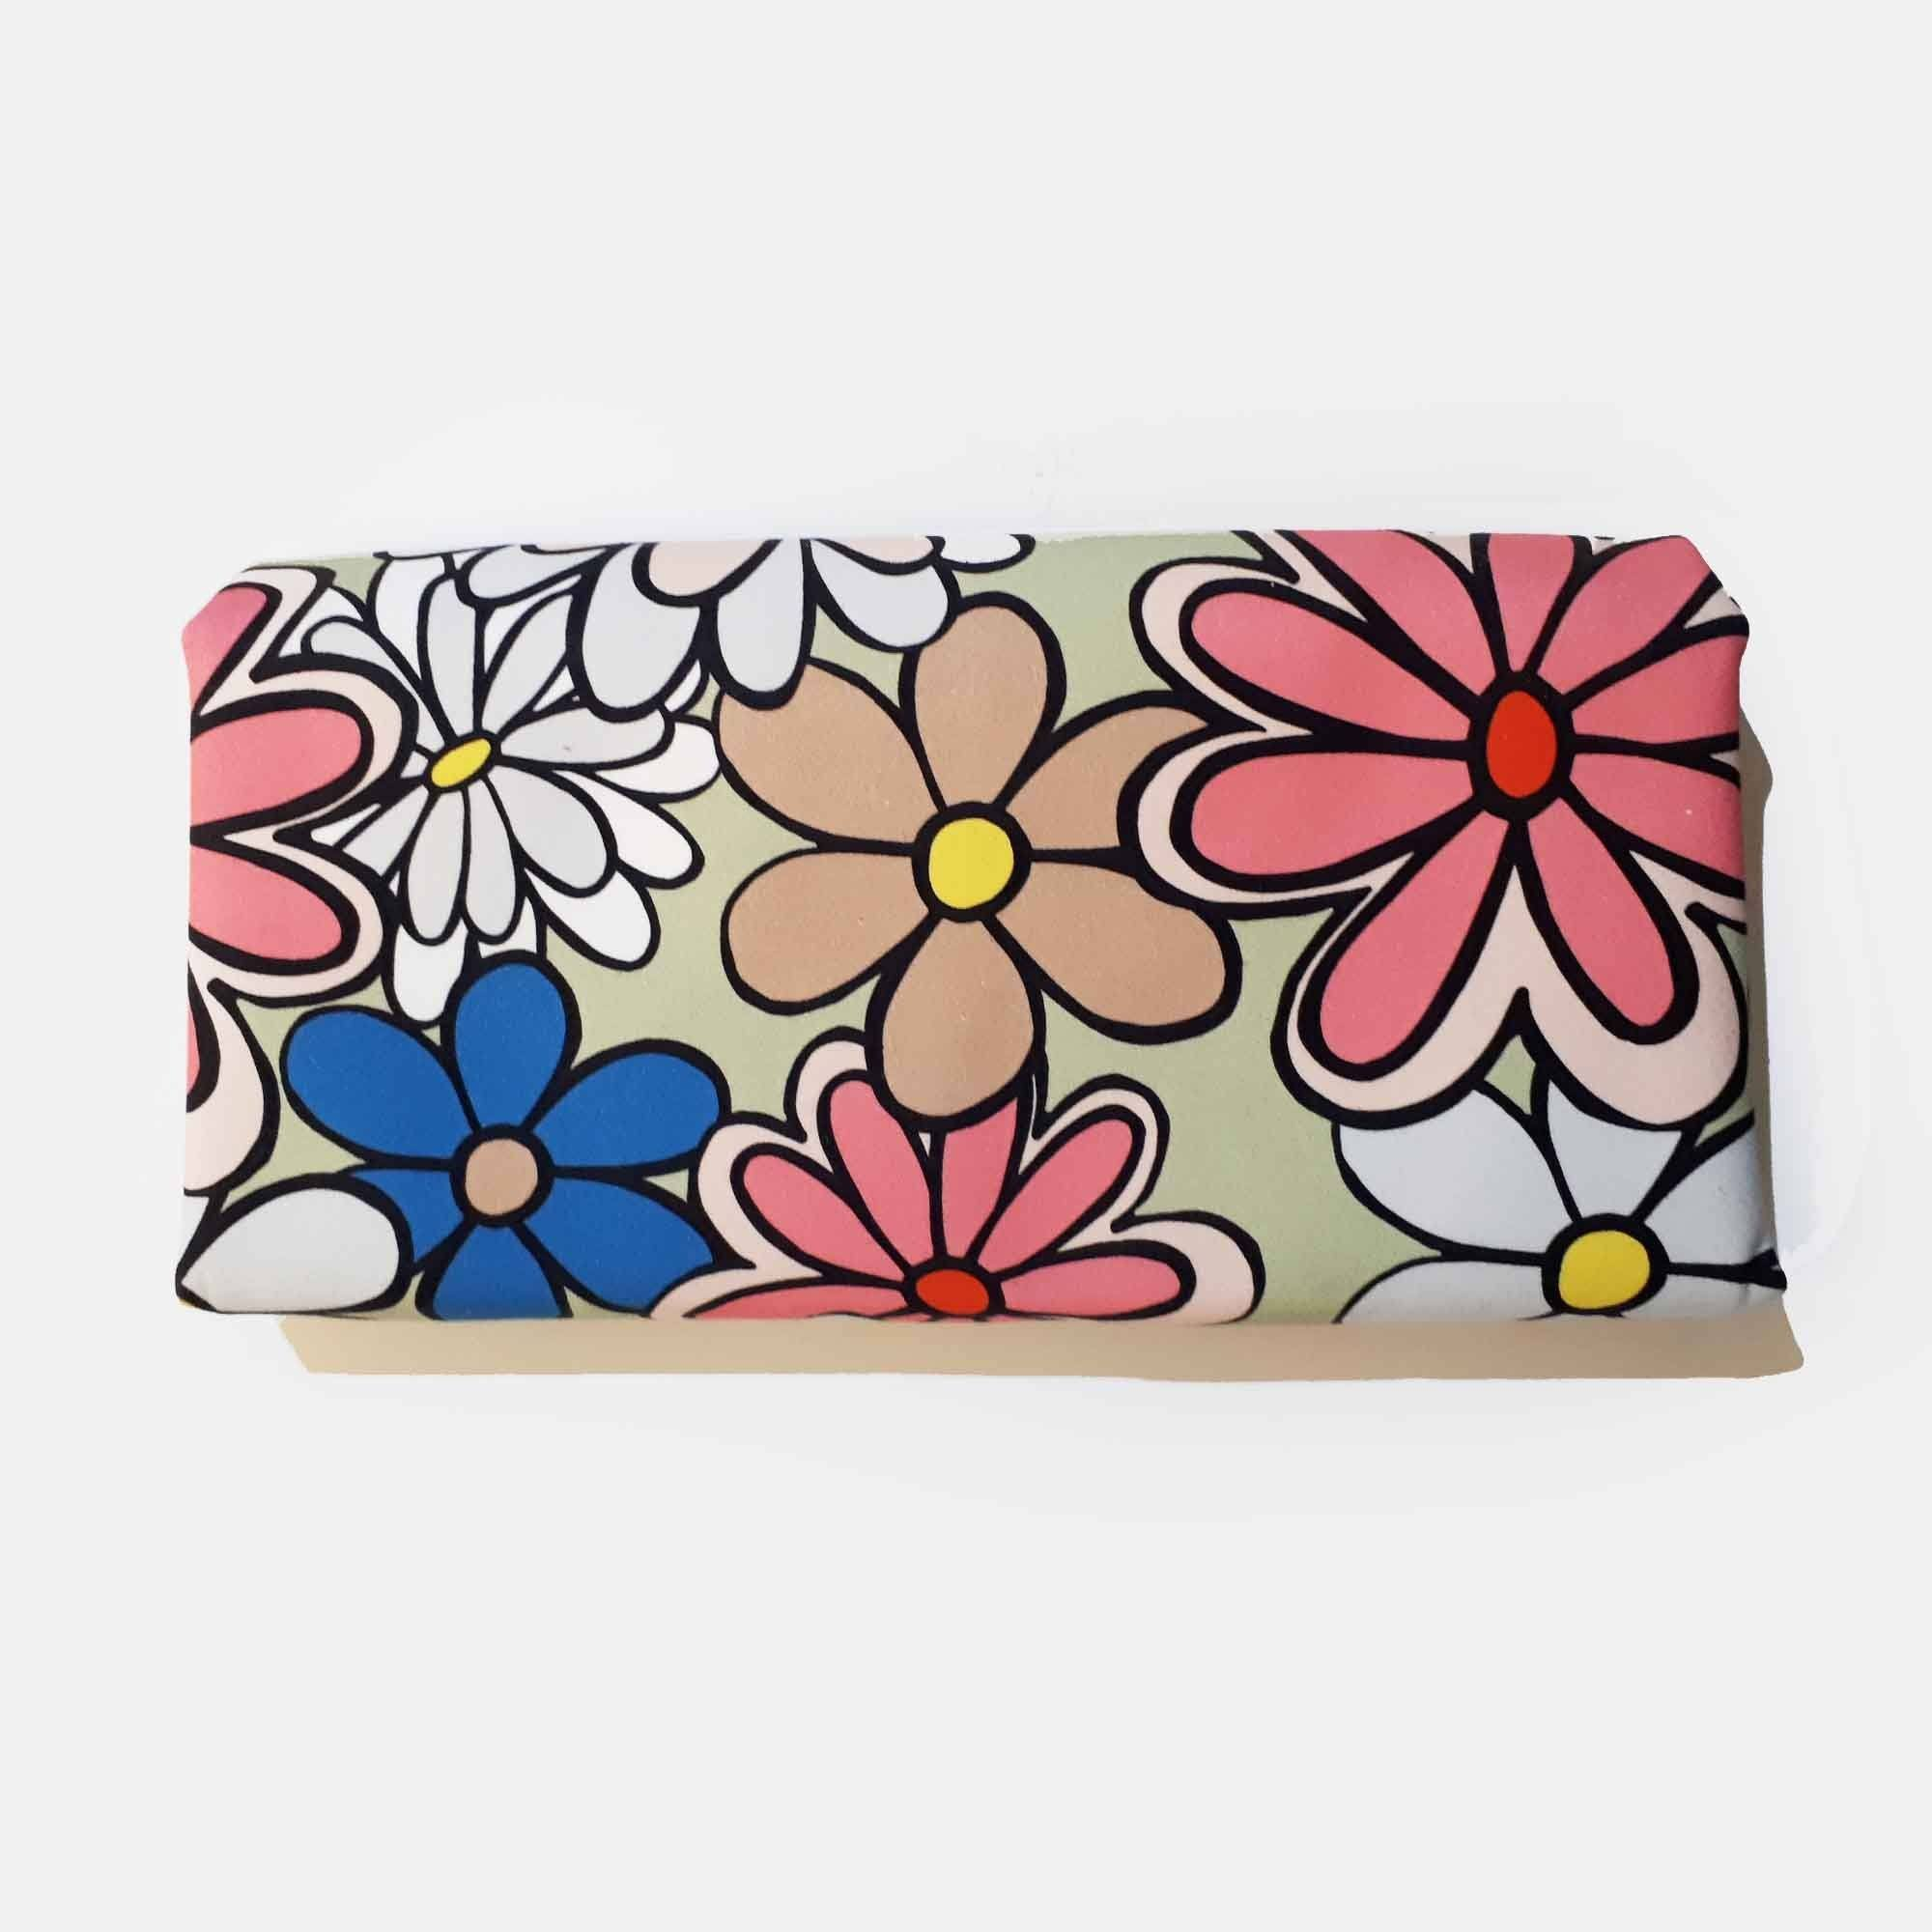 Roger Vivier Small Ines Clutch Bag